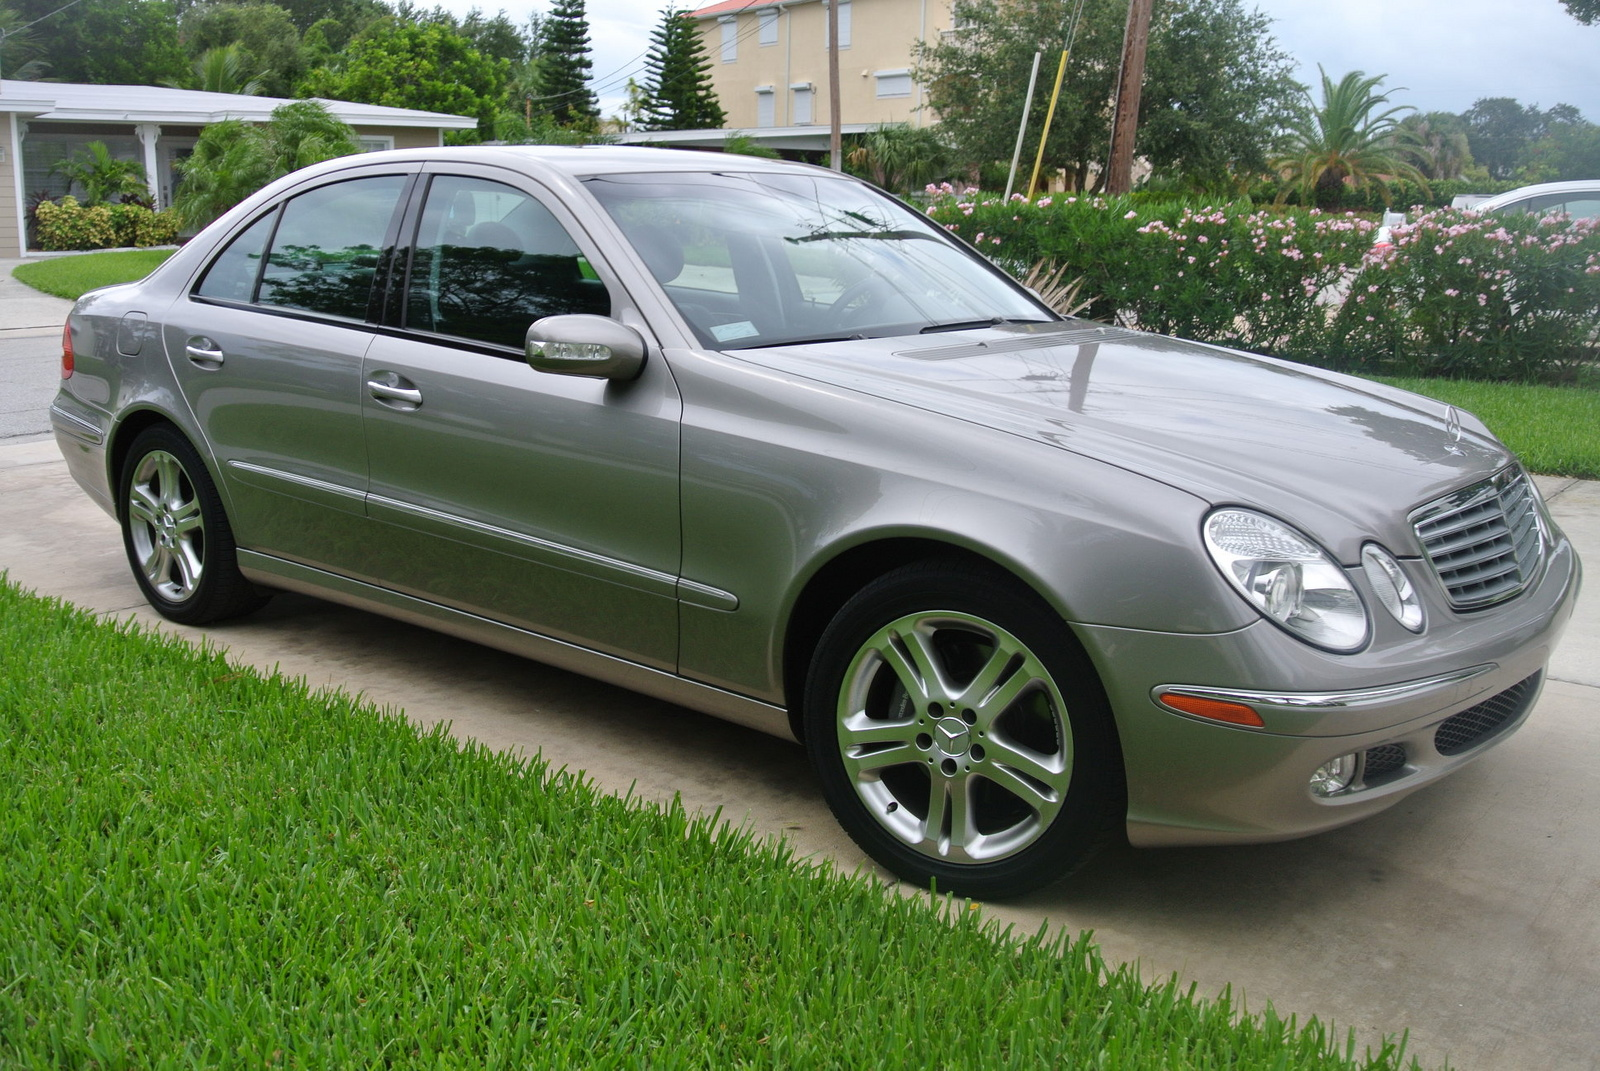 2004 Mercedes Benz E Class Pictures C6105 on 2014 mercedes benz e350 wagon